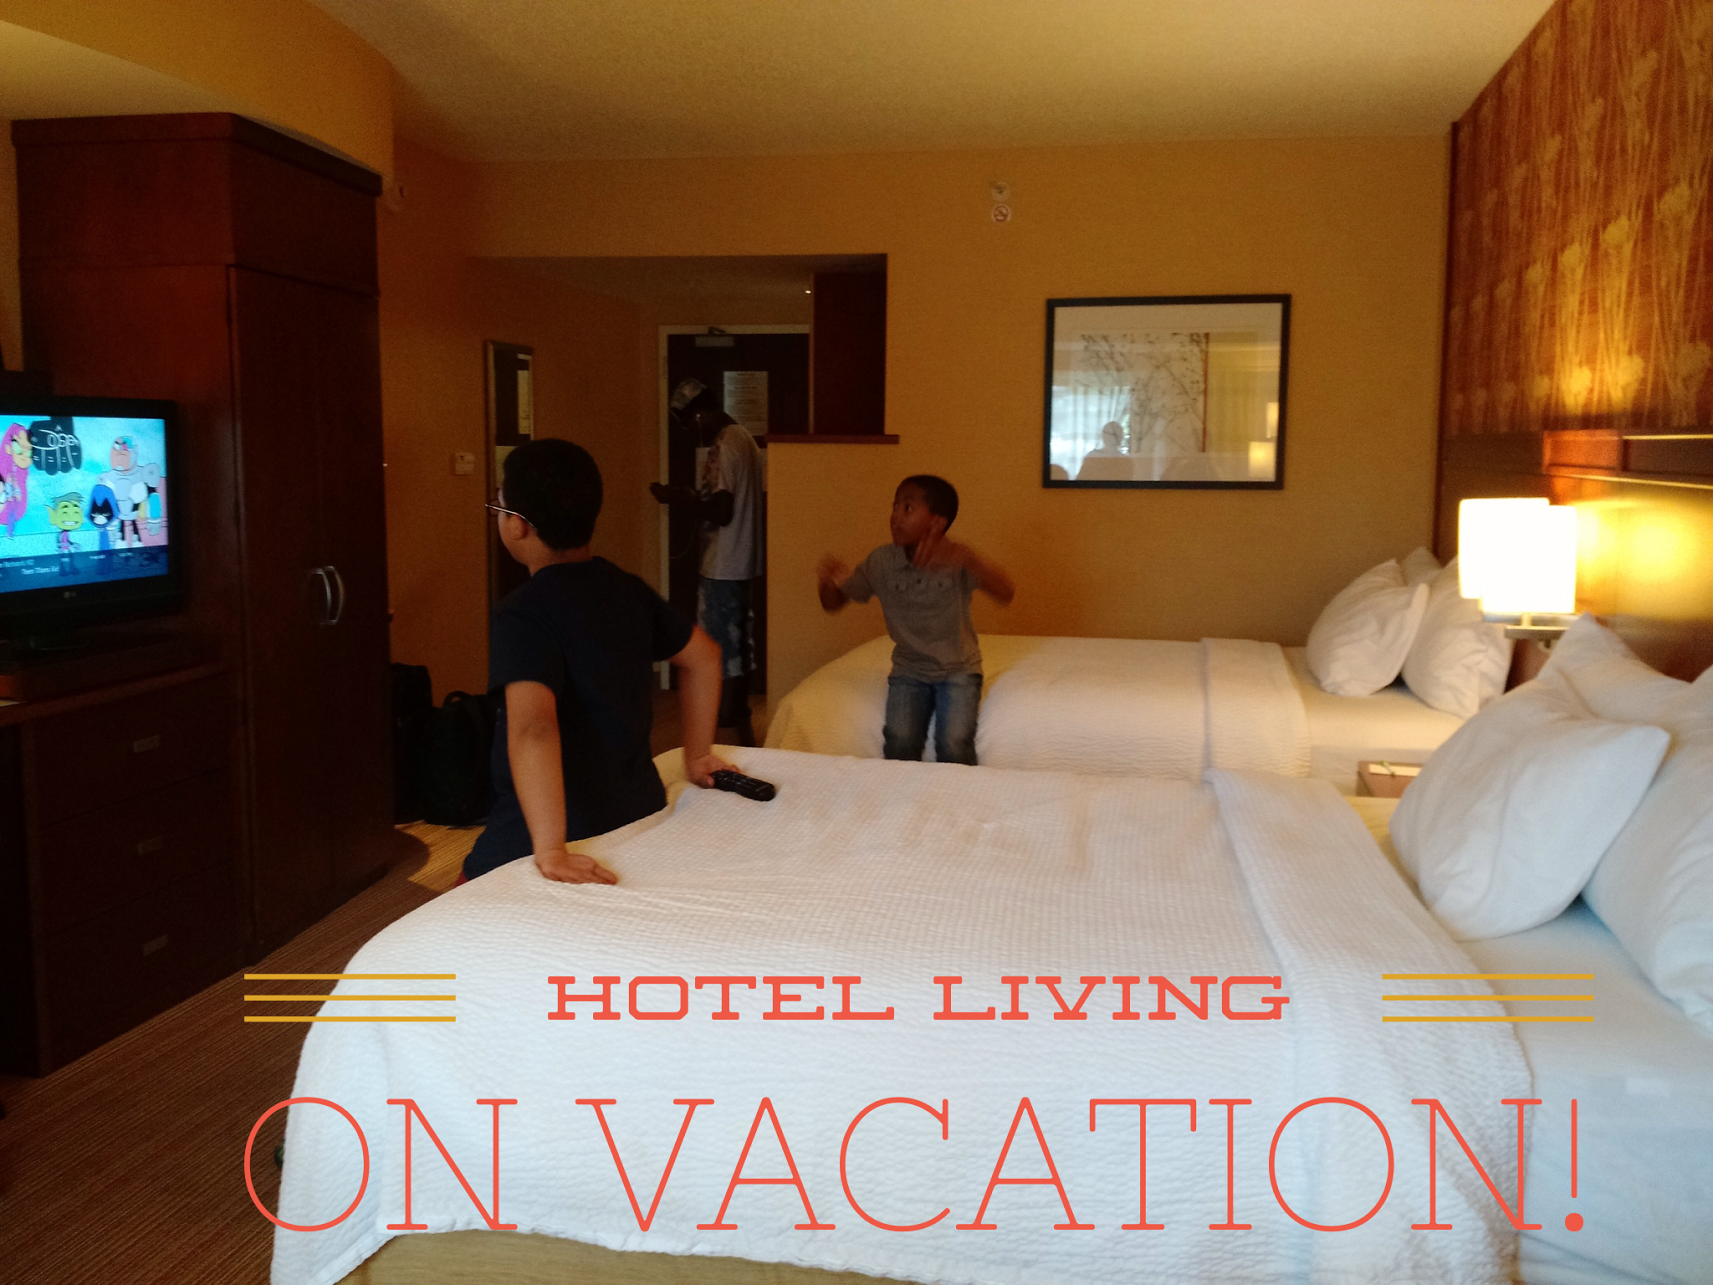 Hotel Vacation Living